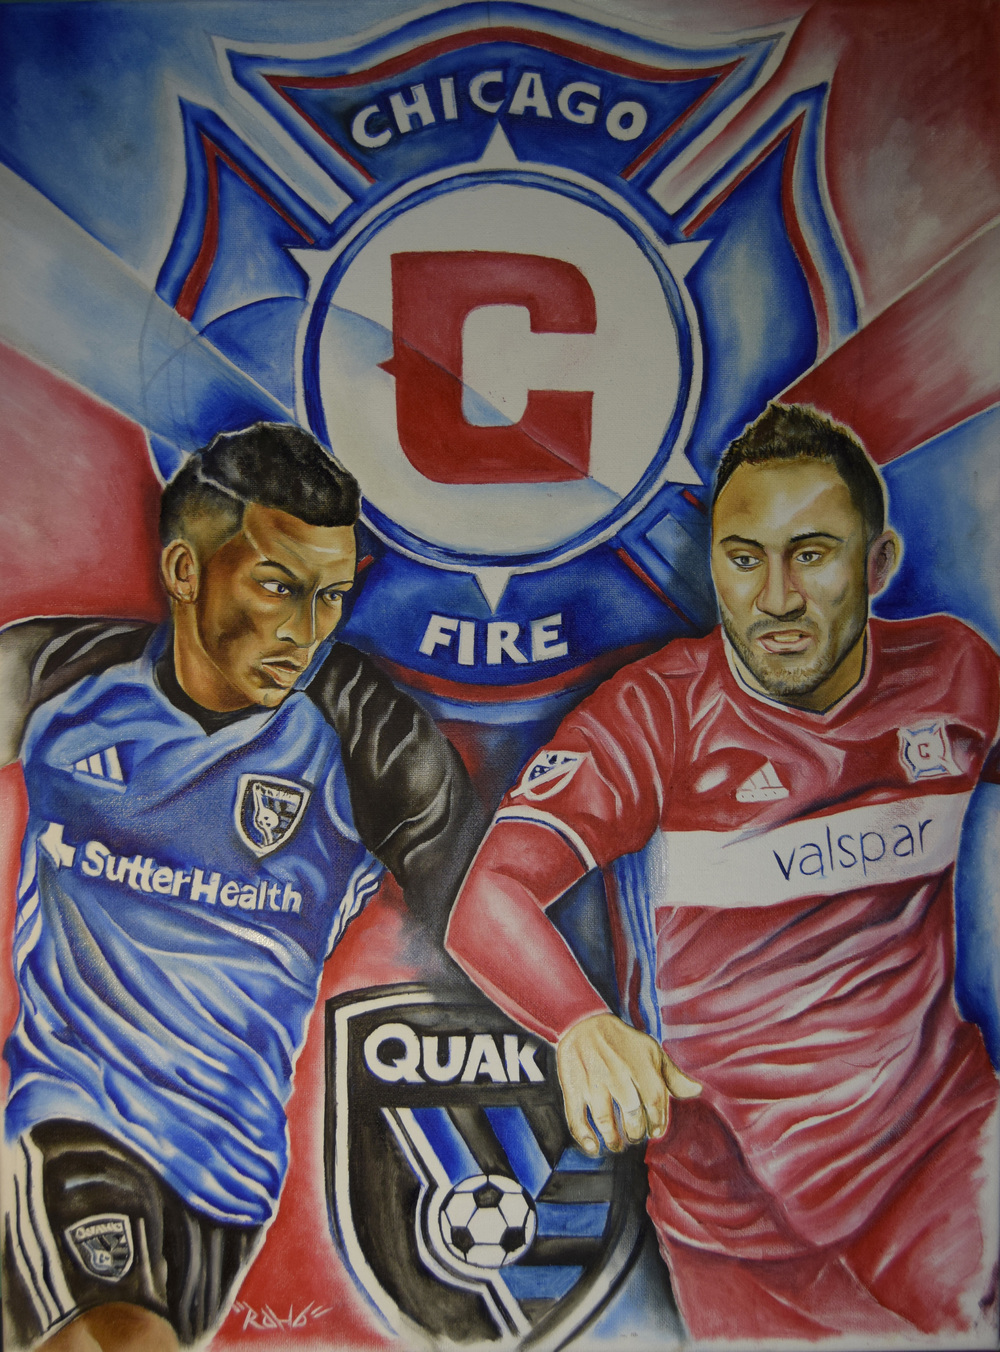 Chicago Fire FC Vs San Jose Quakes Game Day Poster V